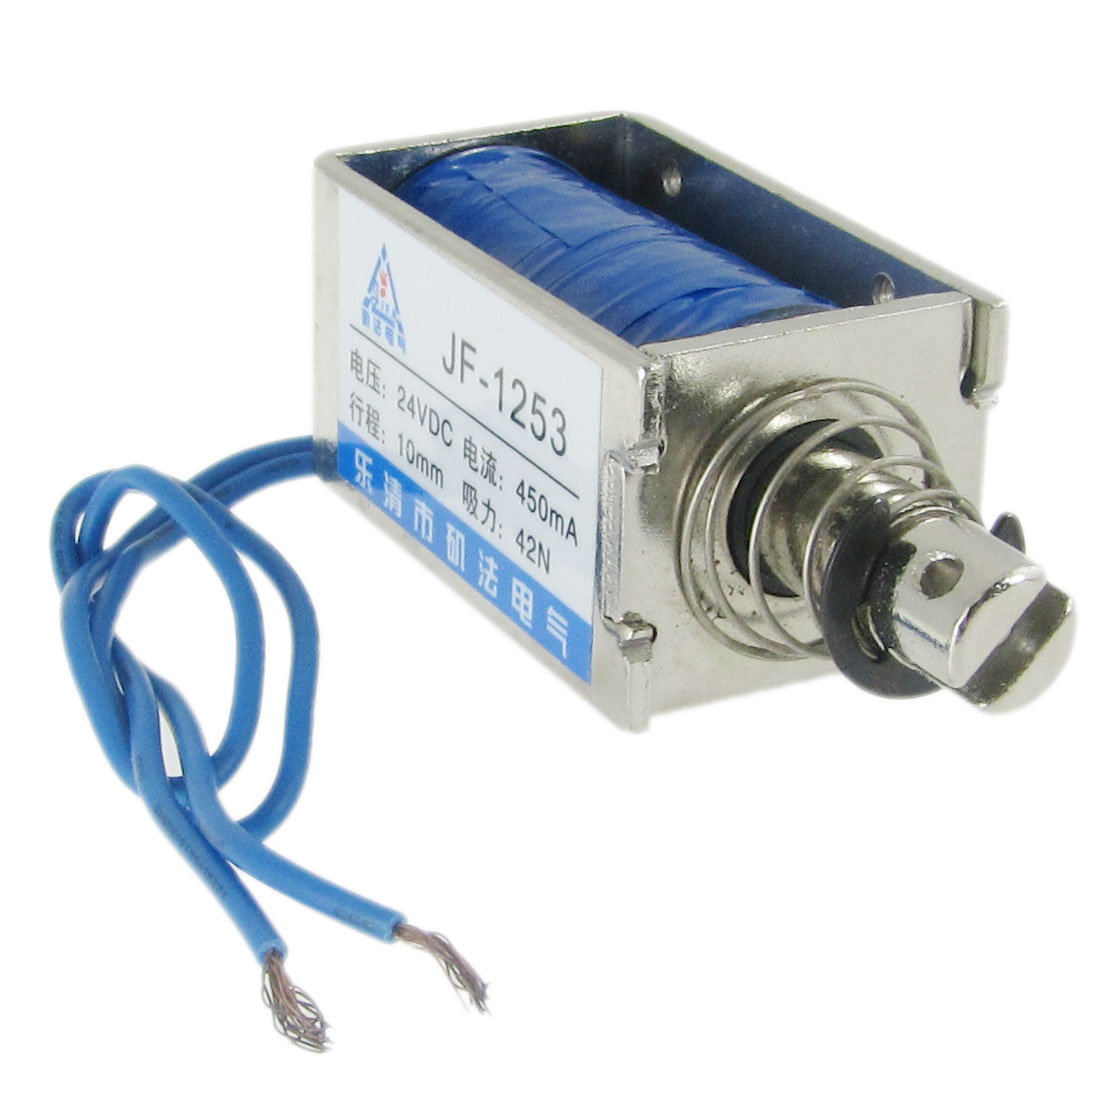 24V DC Direct Current Open Frame Electromagnet Solenoid 10mm Stroke 42N Force